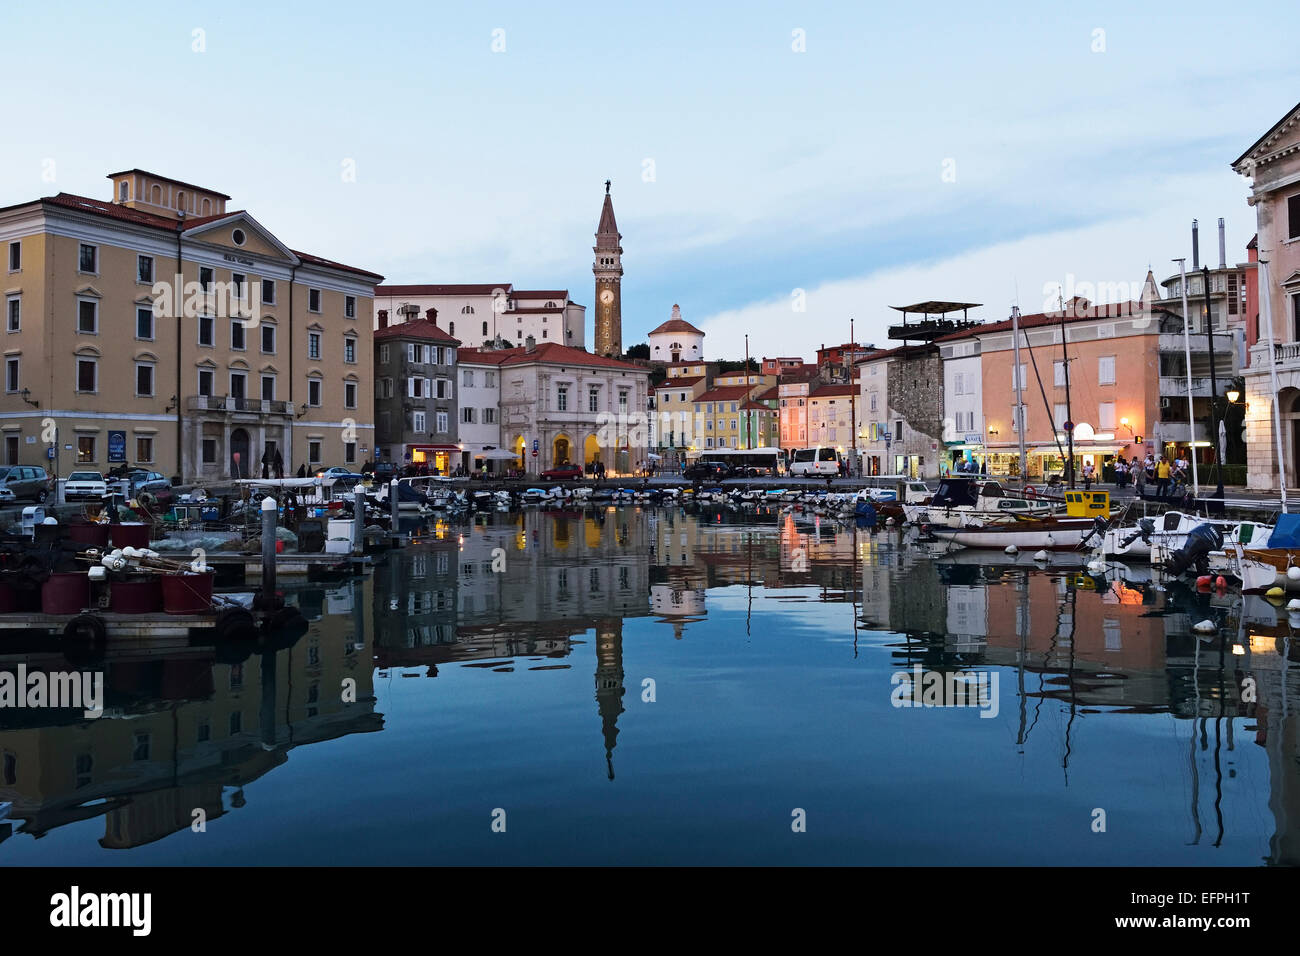 Harbour, Piran, Gulf of Piran, Adriatic Sea, Slovenia, Europe Stock Photo